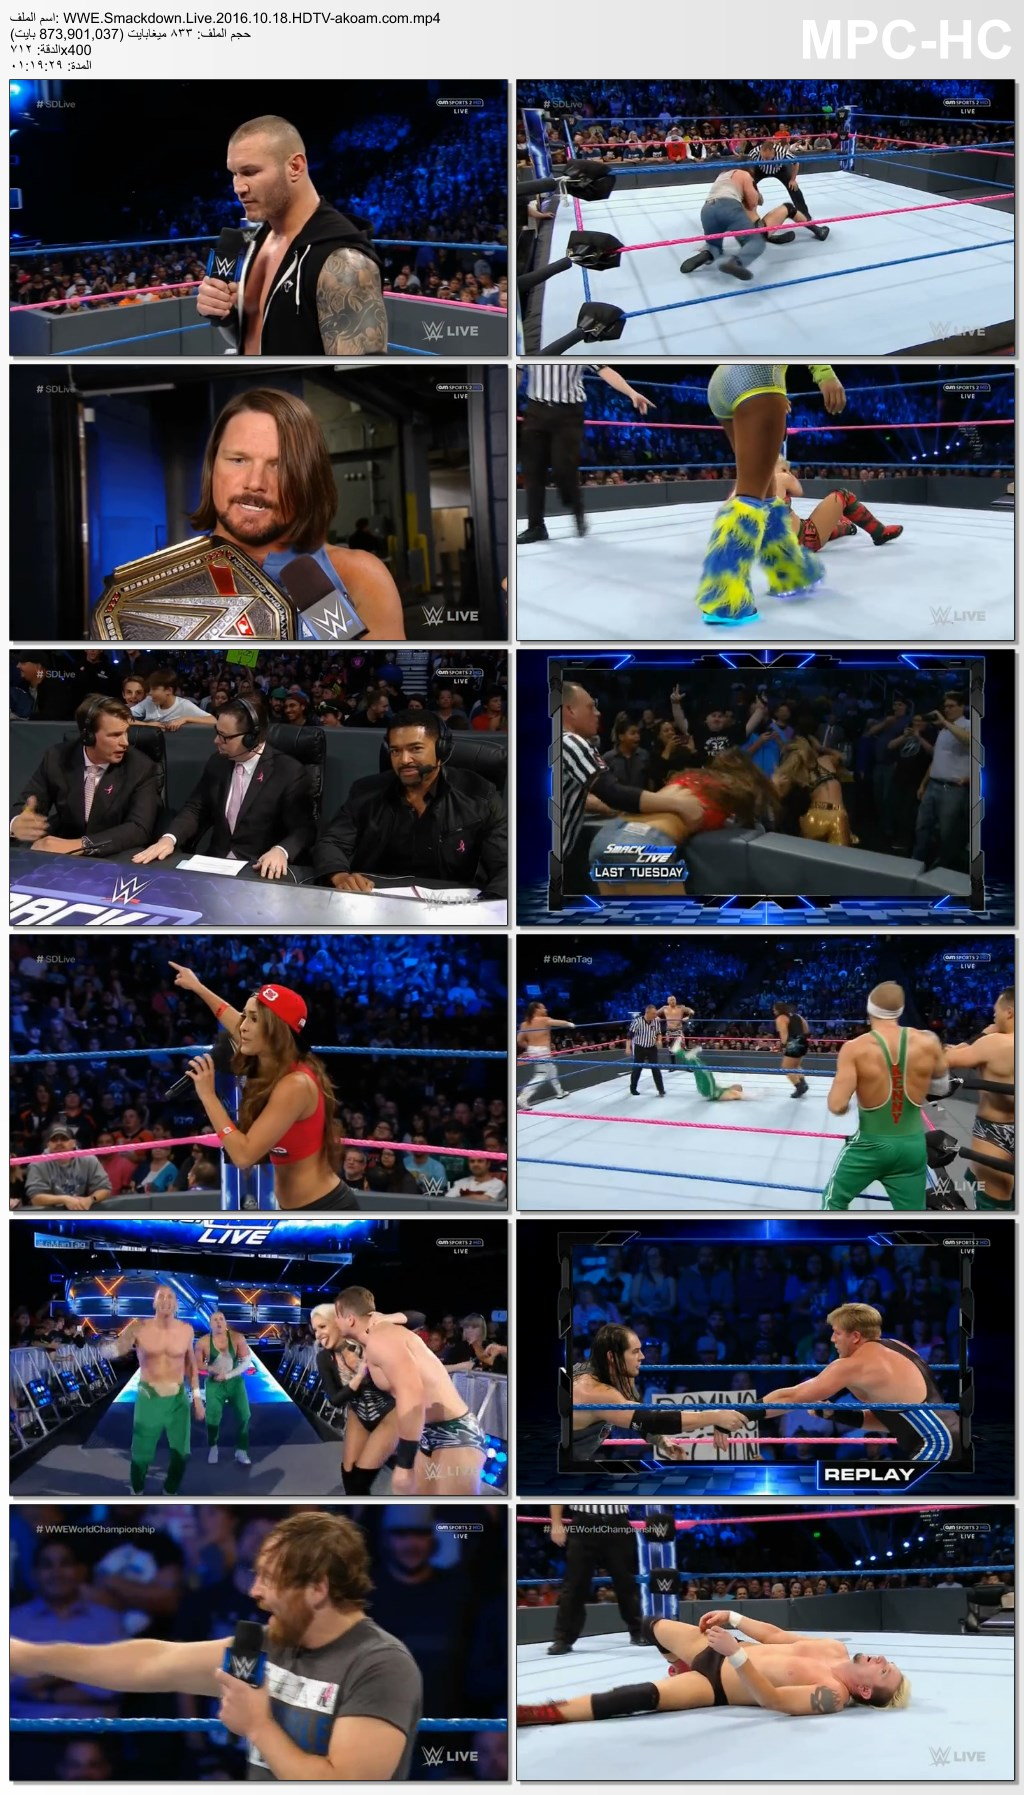 WWE Smackdown Live  2016,WWE,Smackdown